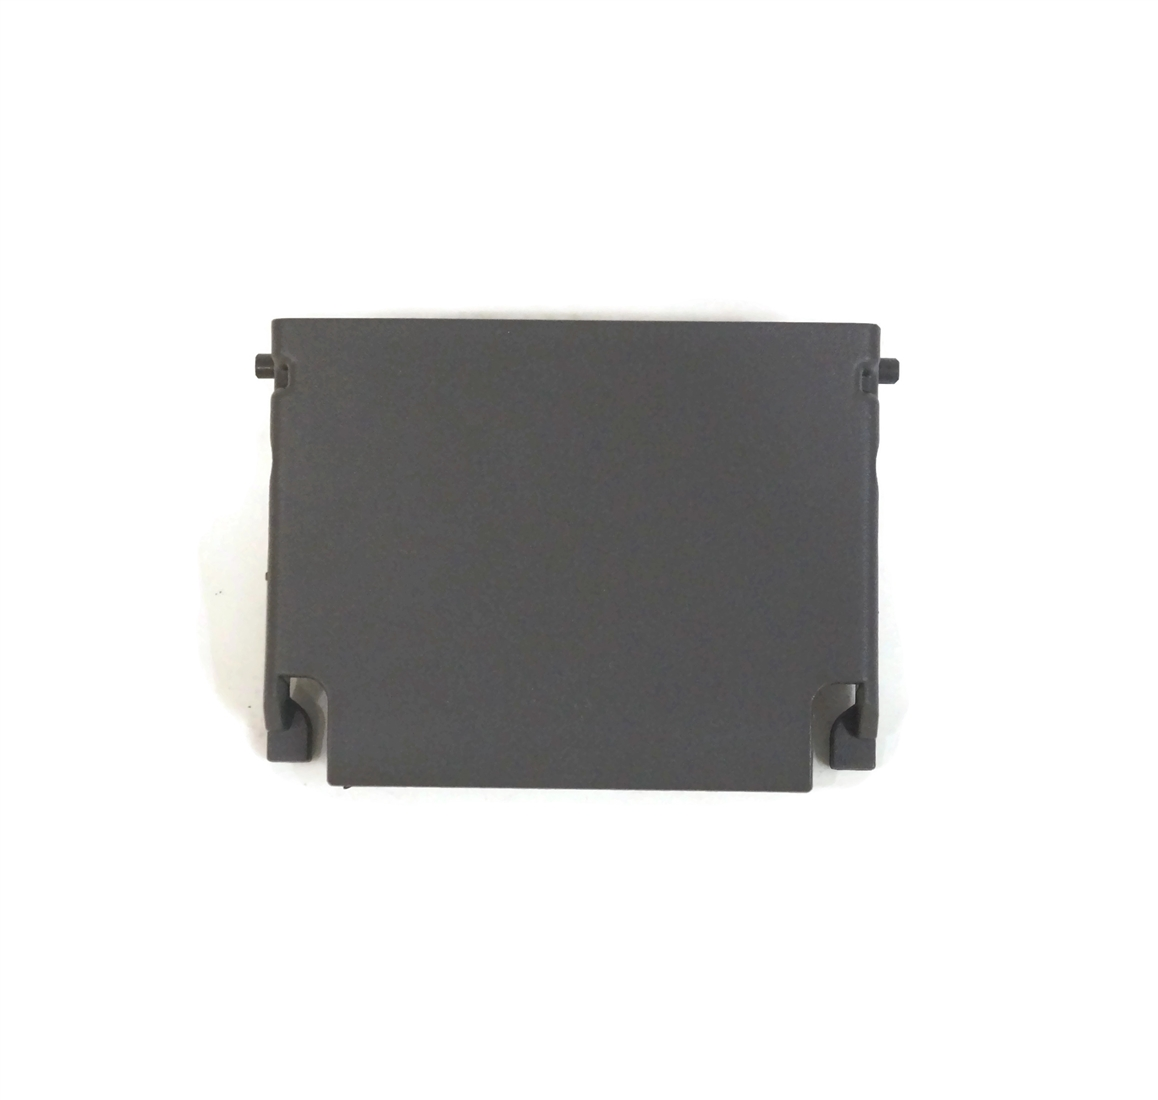 Whirlpool WPW10250162 Rack Adjuster Cover